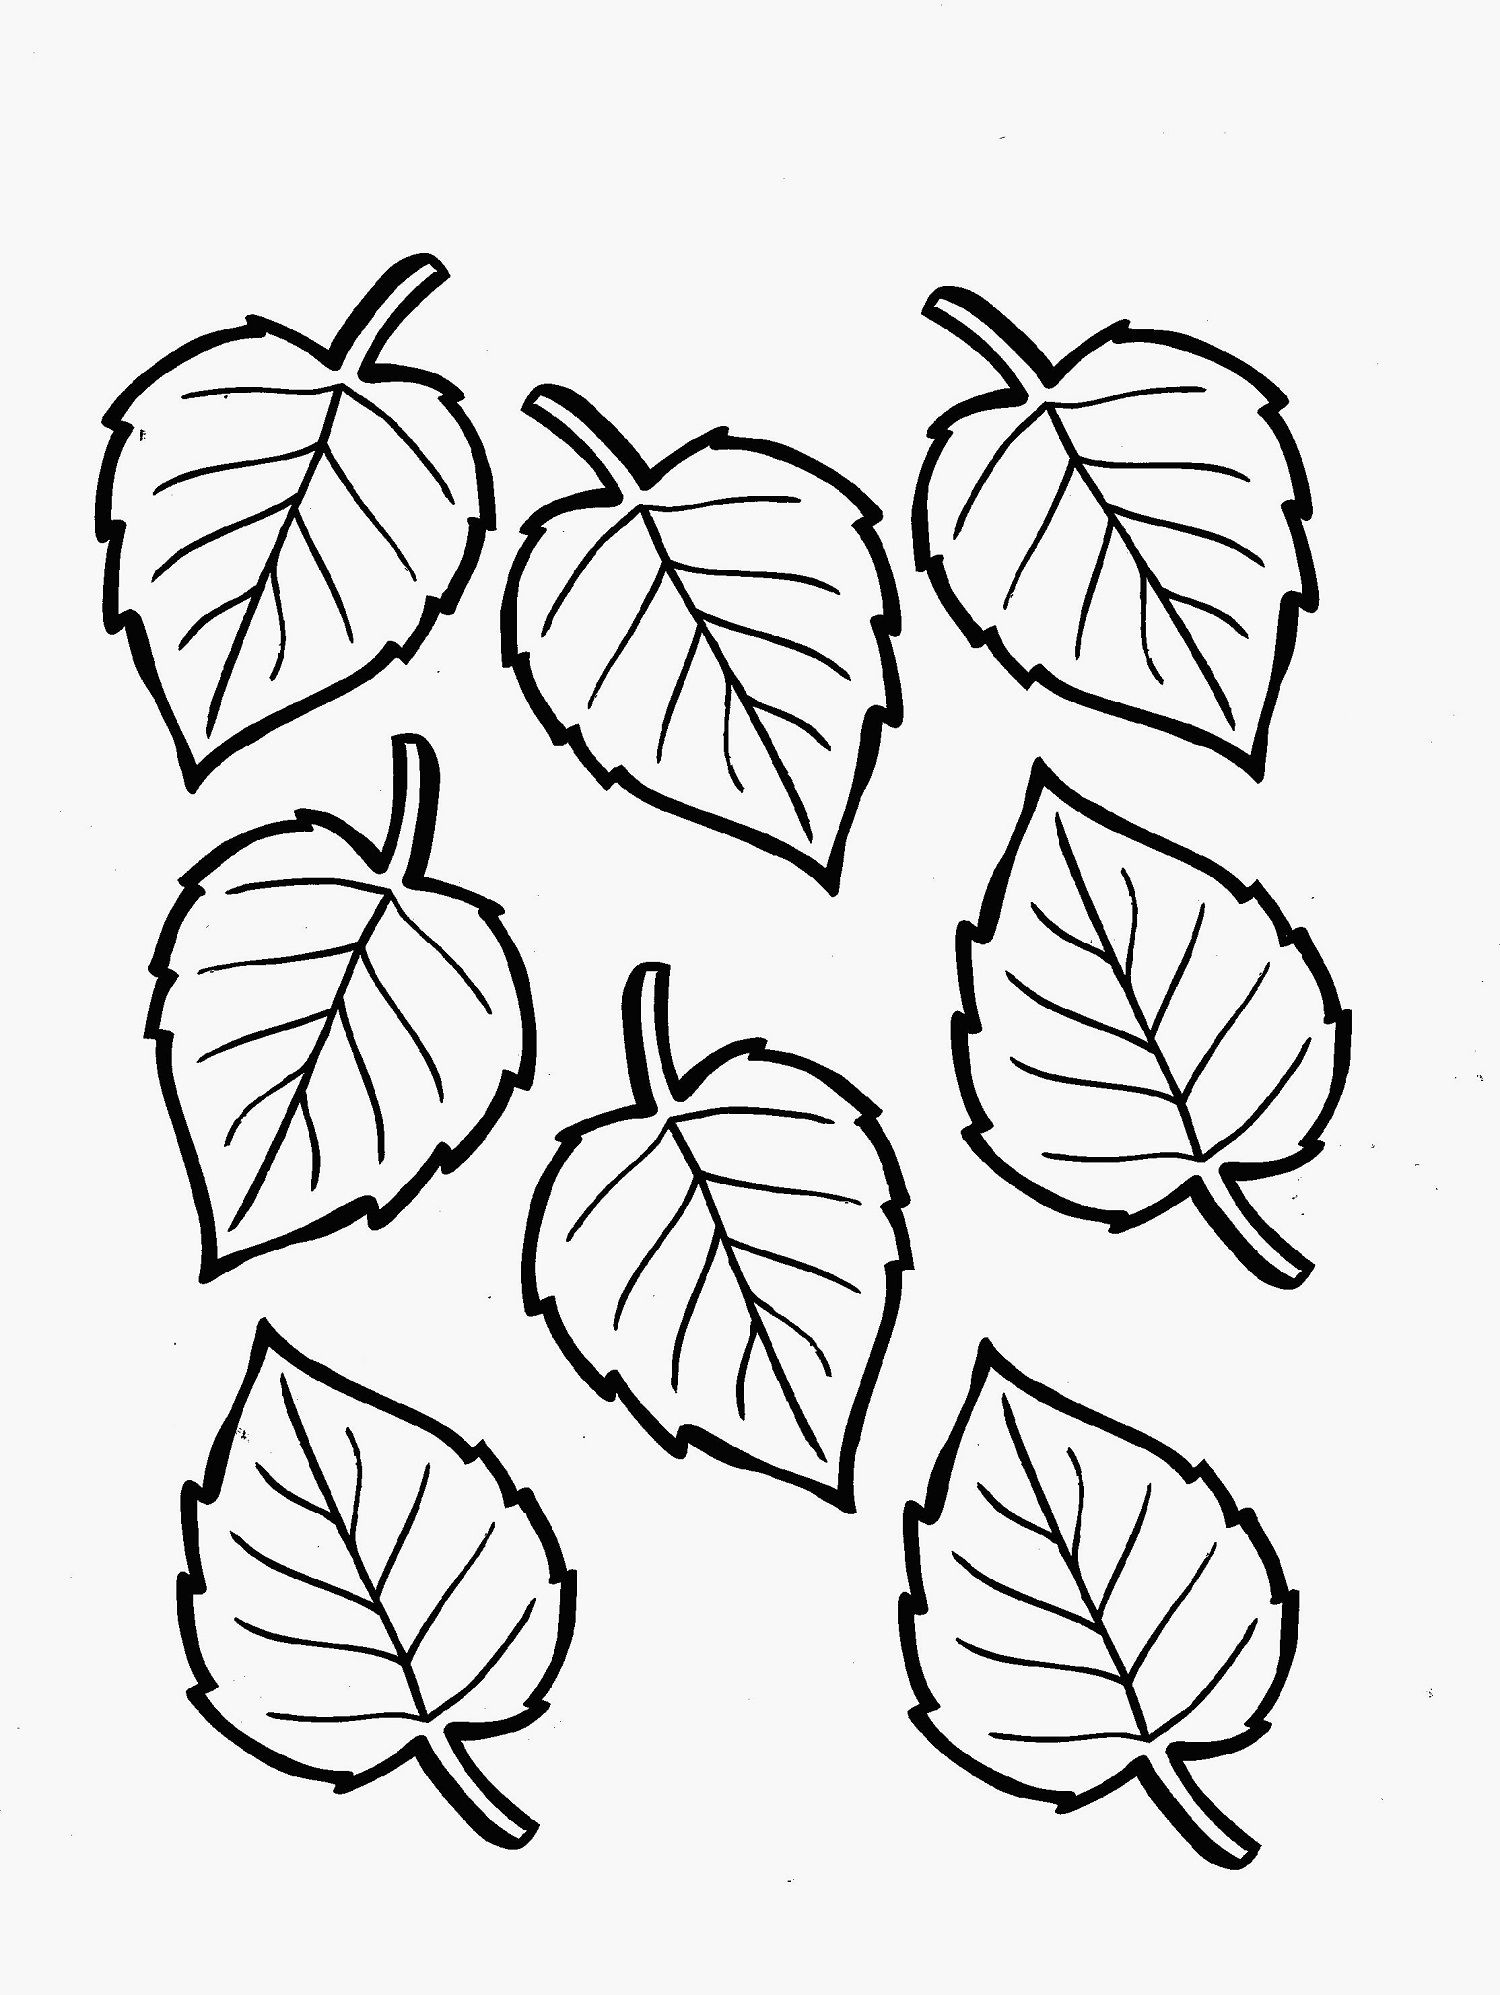 Coloring pages leaves - Leaf Coloring Page For Environment Theme Of Coloring Time Dear Joya